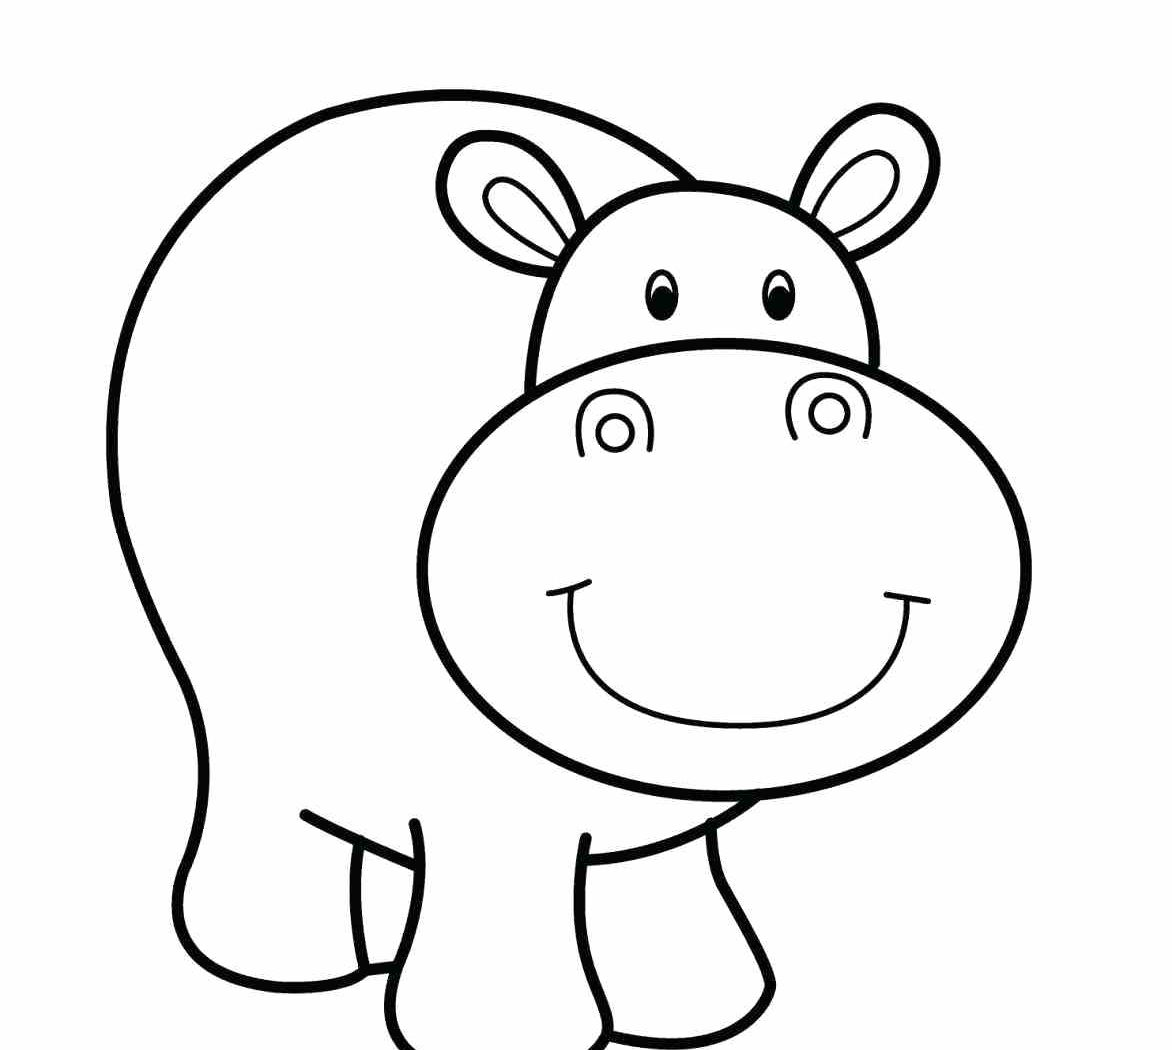 baby animal outlines cute animal coloring pages best coloring pages for kids baby animal outlines